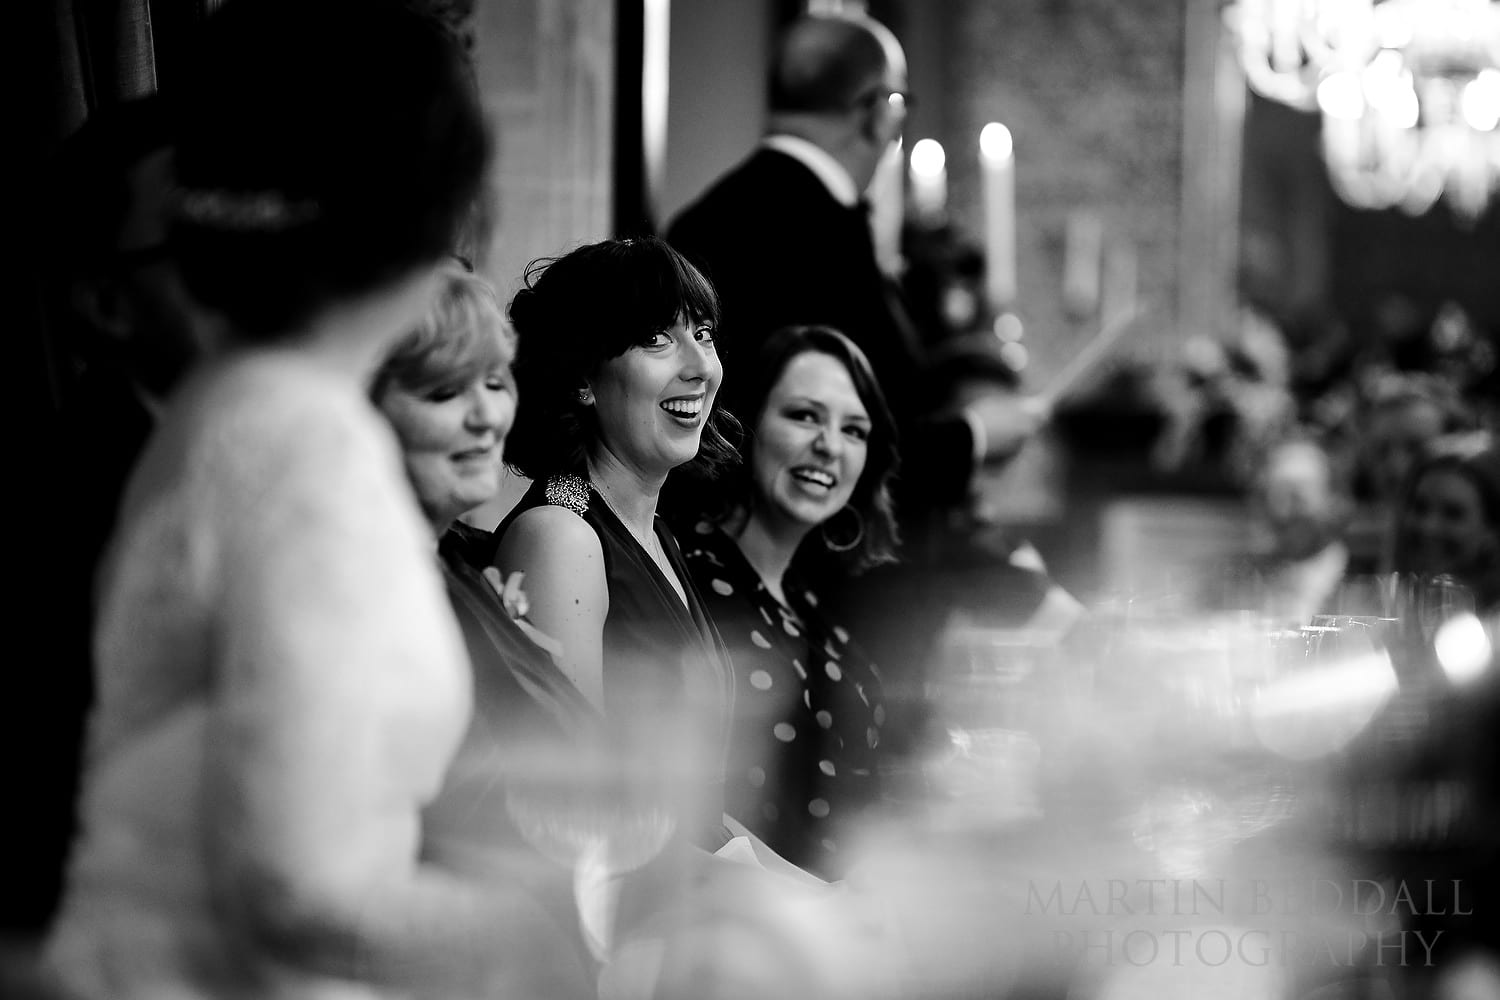 Wedding speeches on the Sigma 105mm f1.4 DG HSM Art Lens in low light